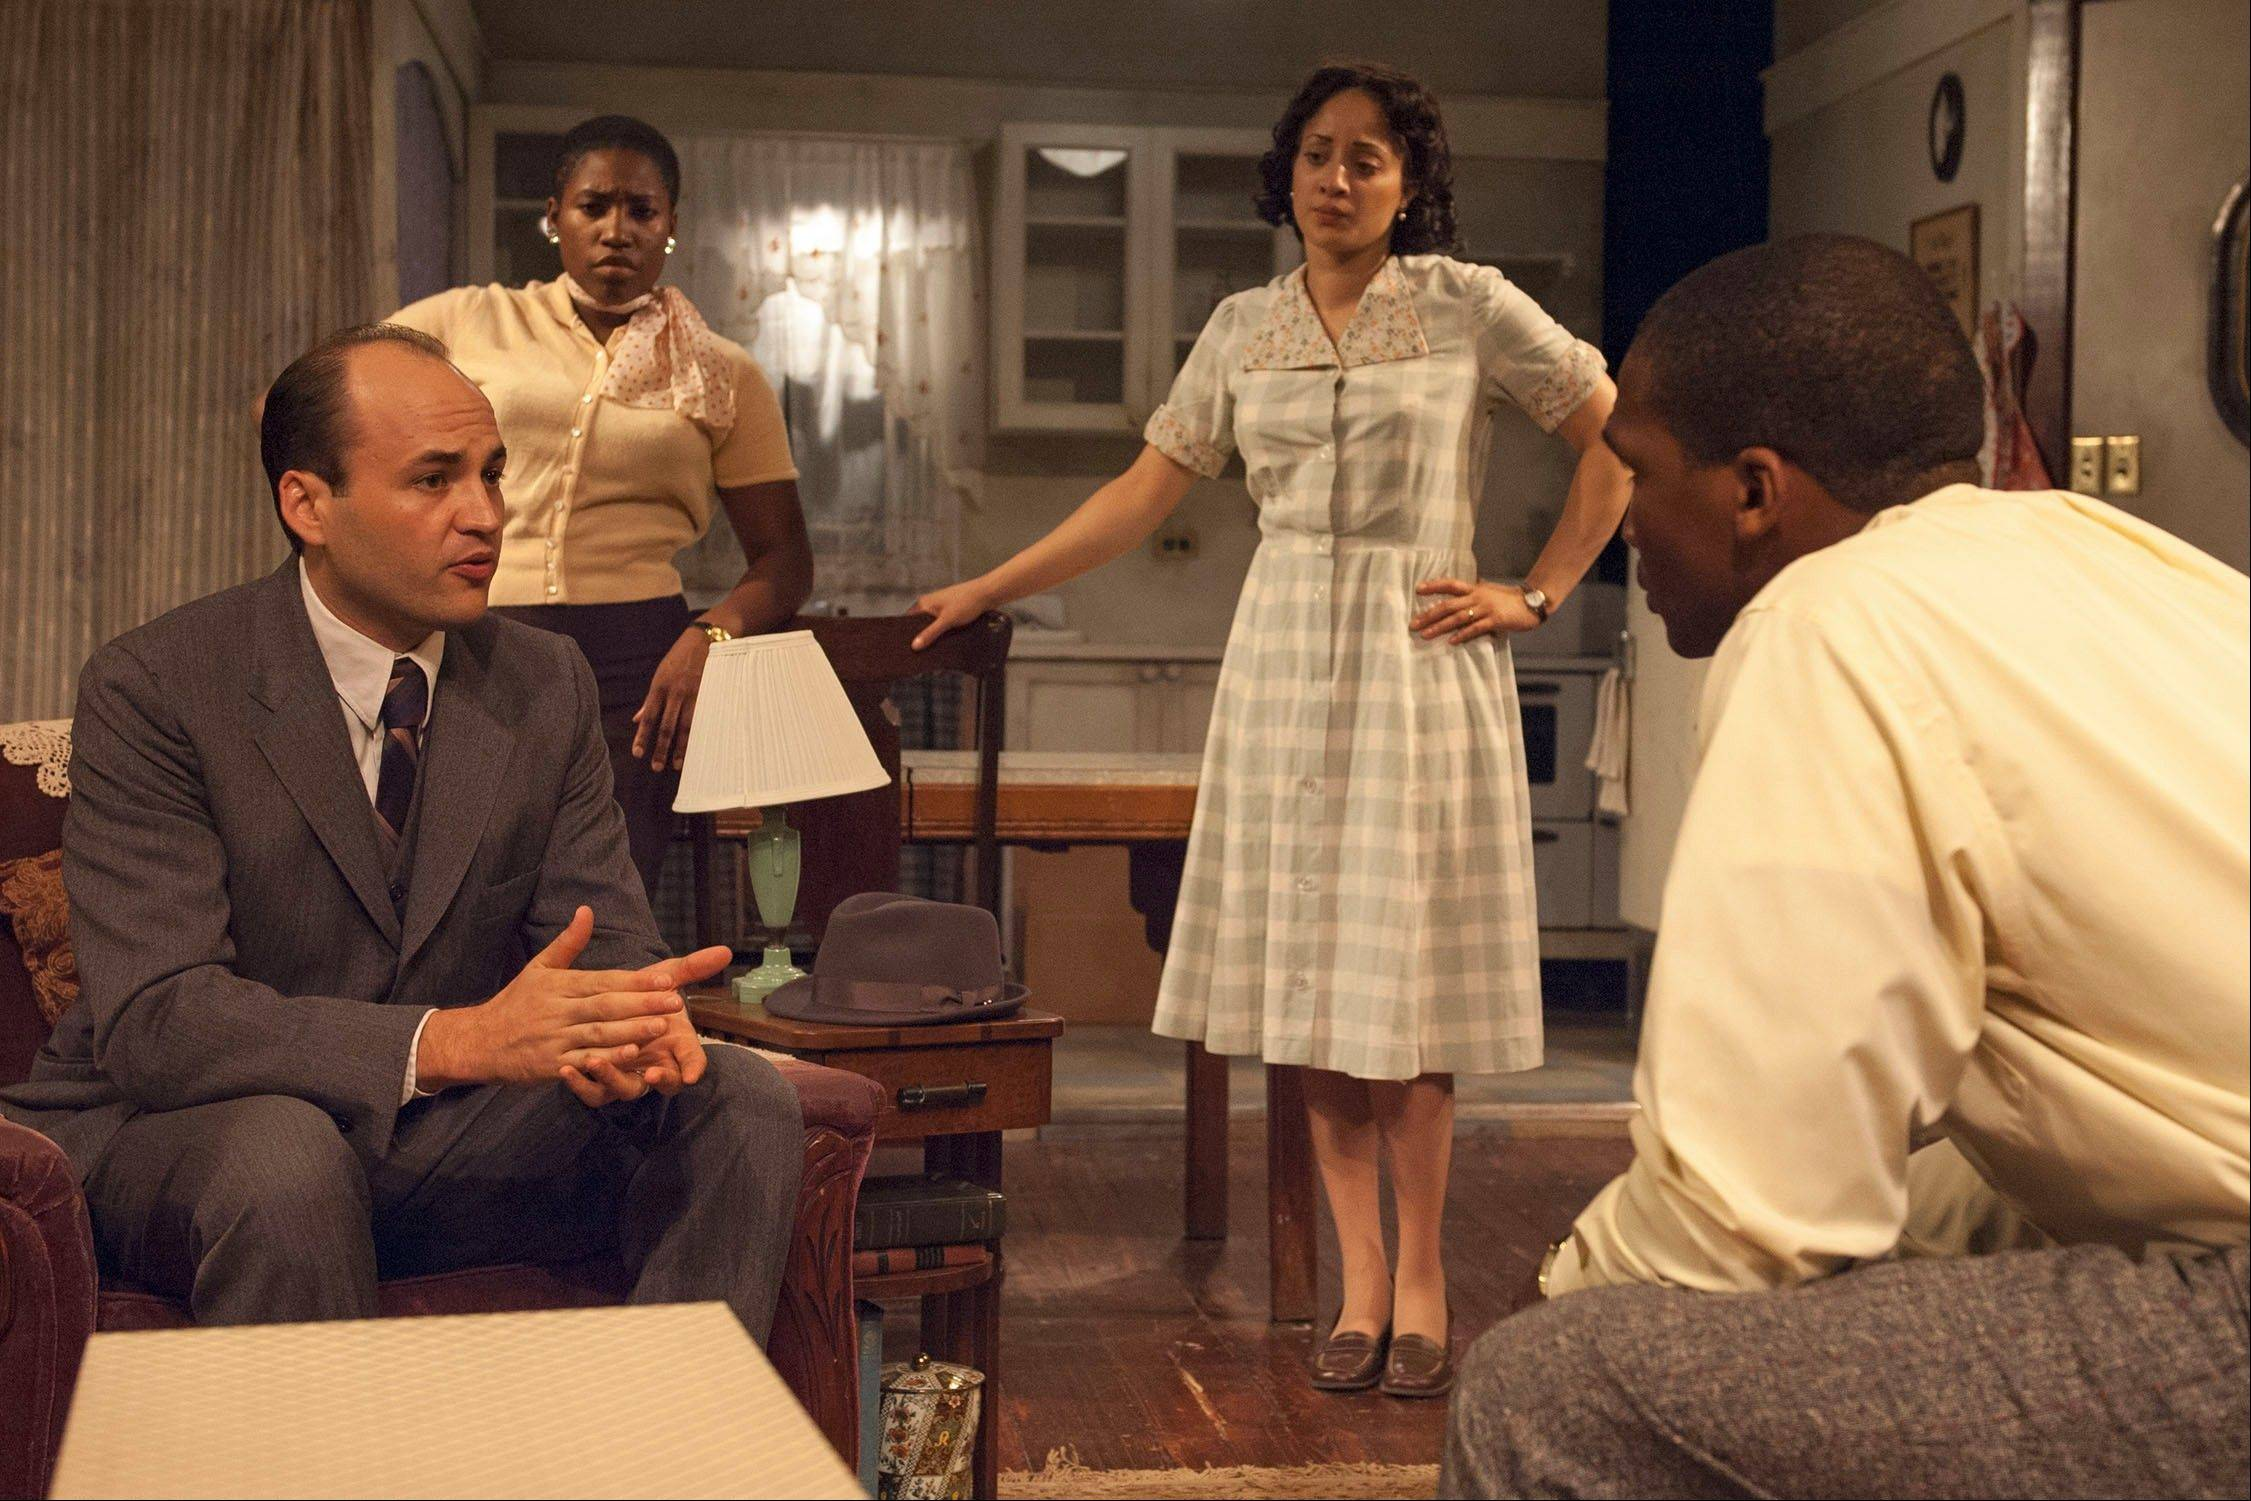 TimeLine proves 'Raisin in the Sun' ripe for revival